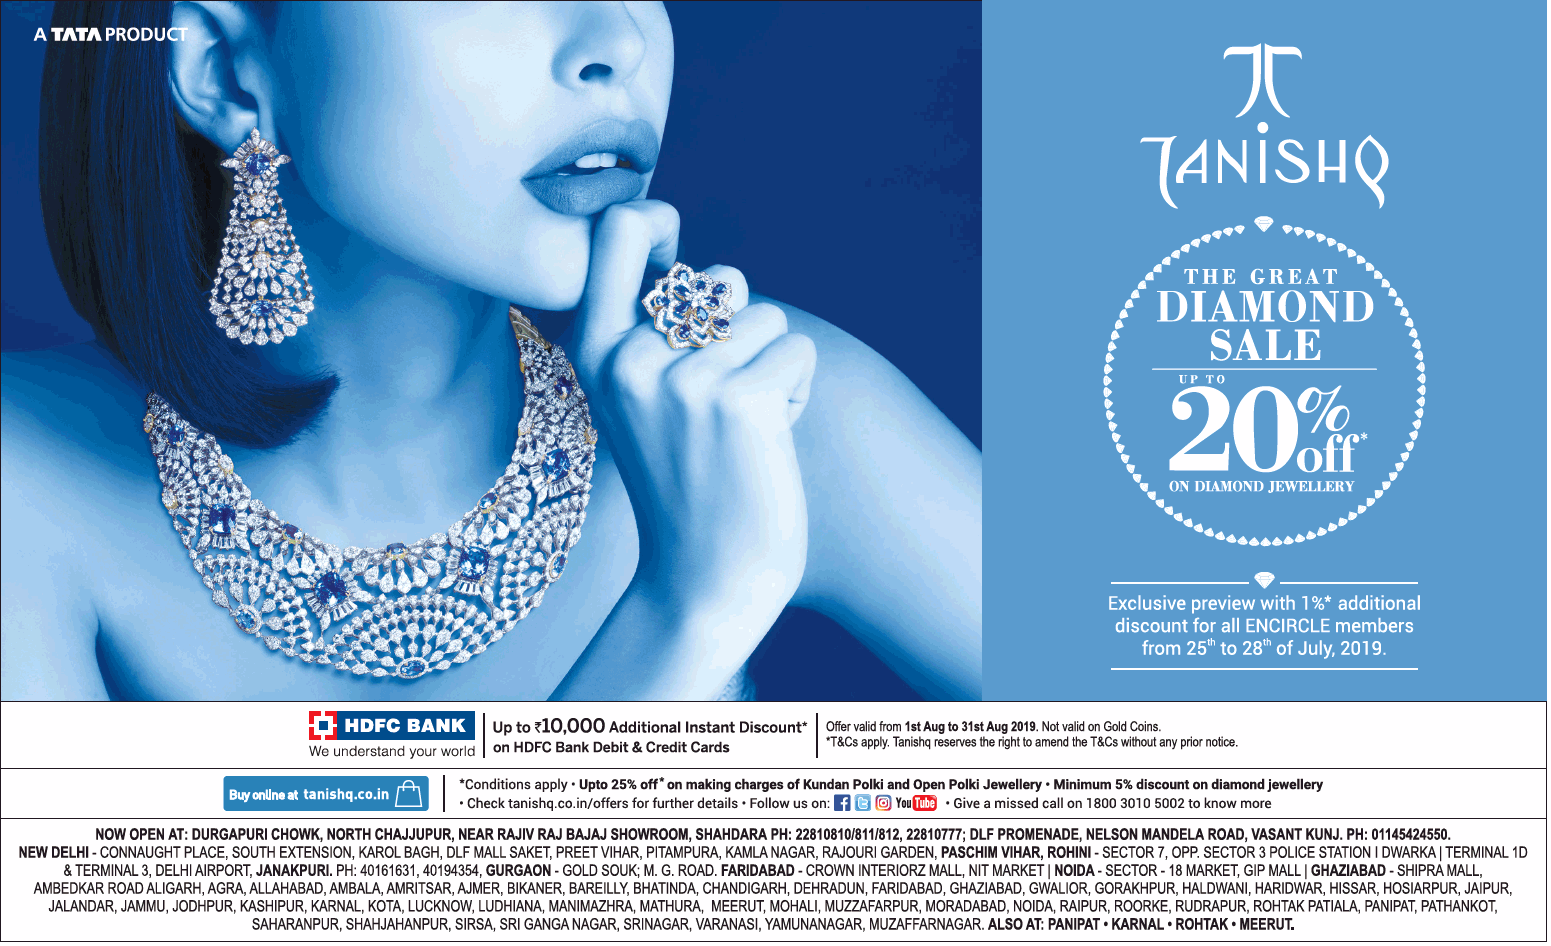 tanishq-the-great-diamond-sale-ad-times-of-india-delhi-26-07-2019.png